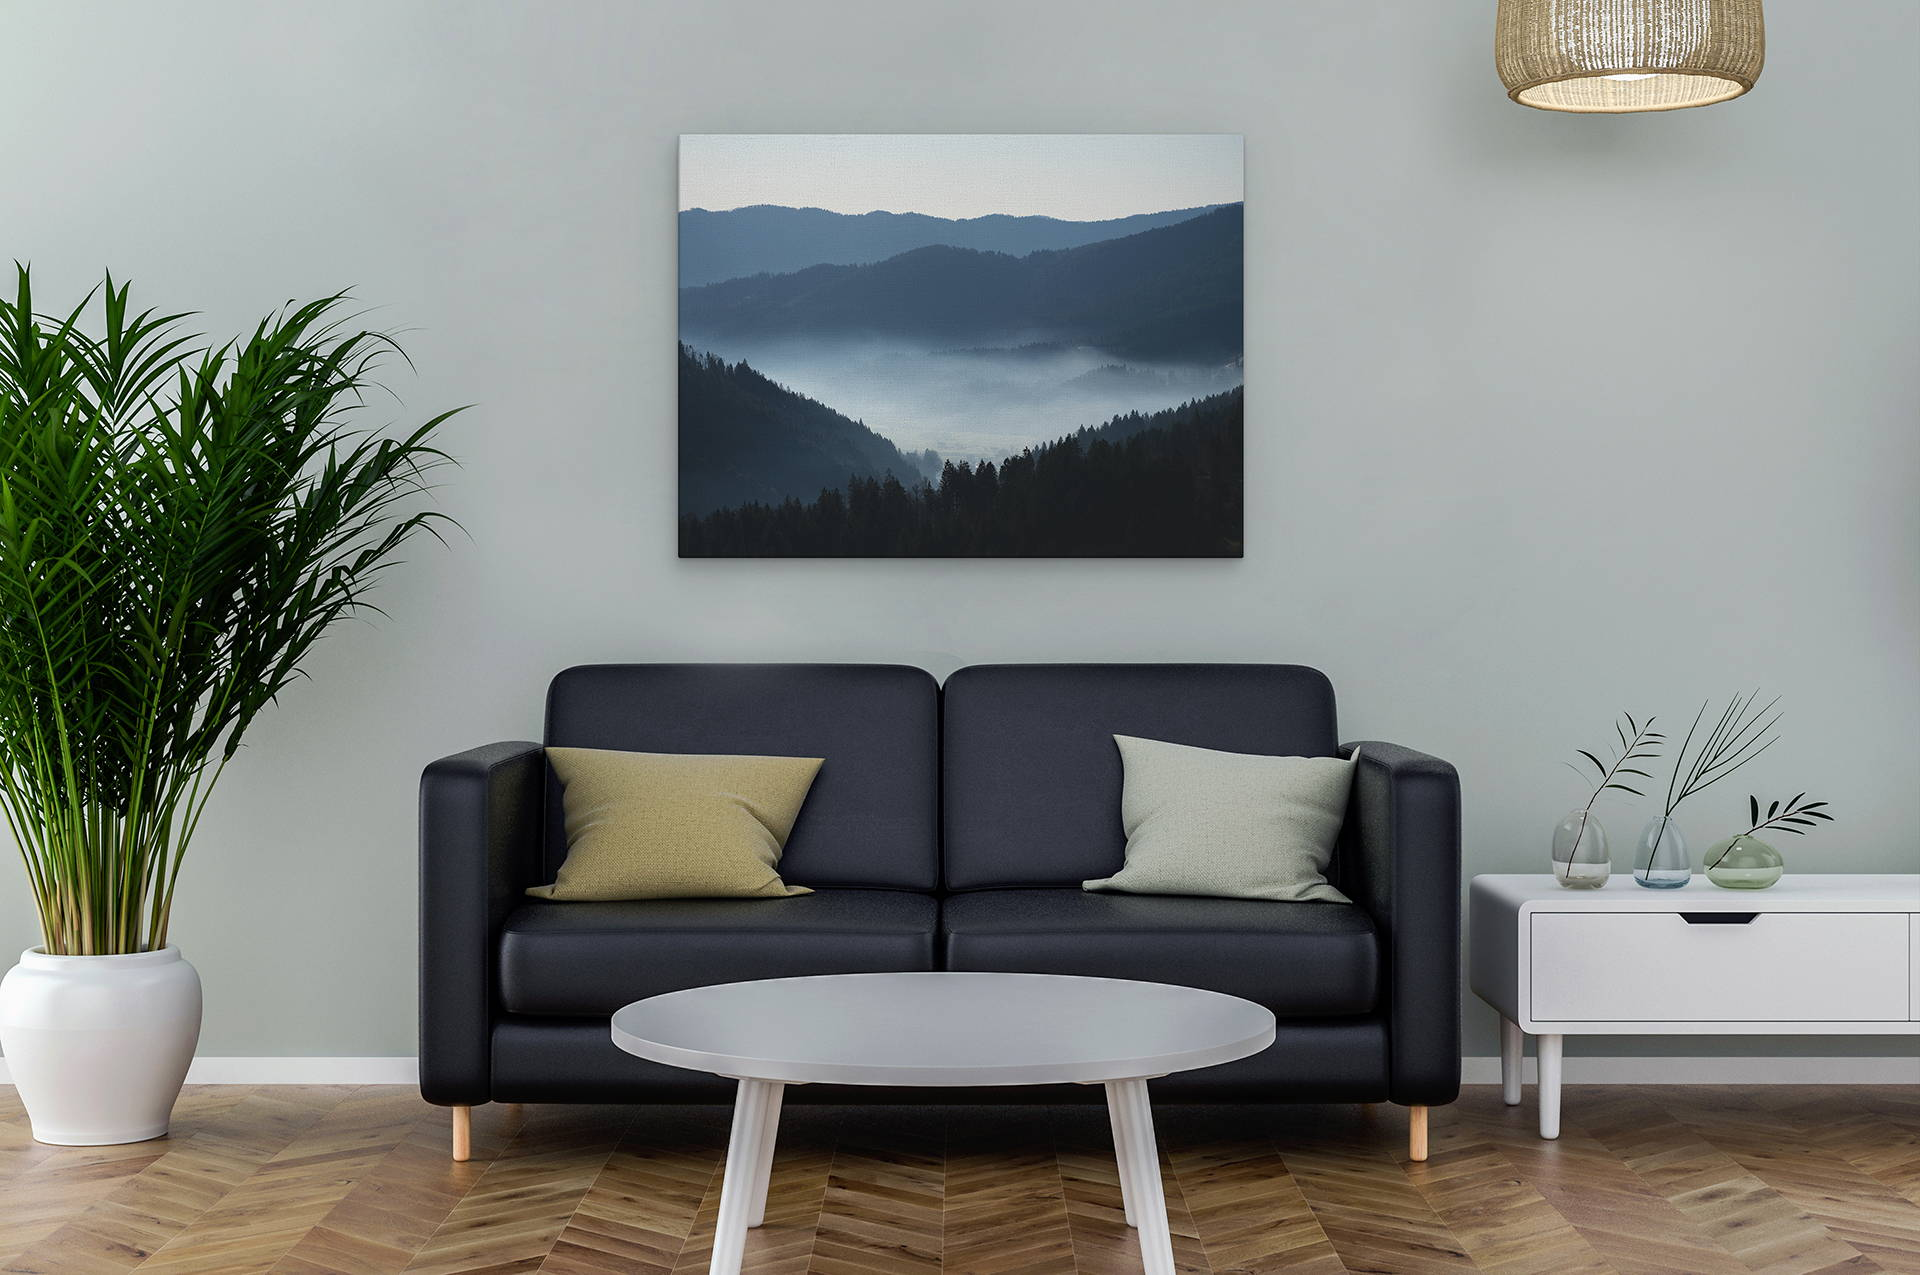 Mountain with lake canvas wall art above couch in a room